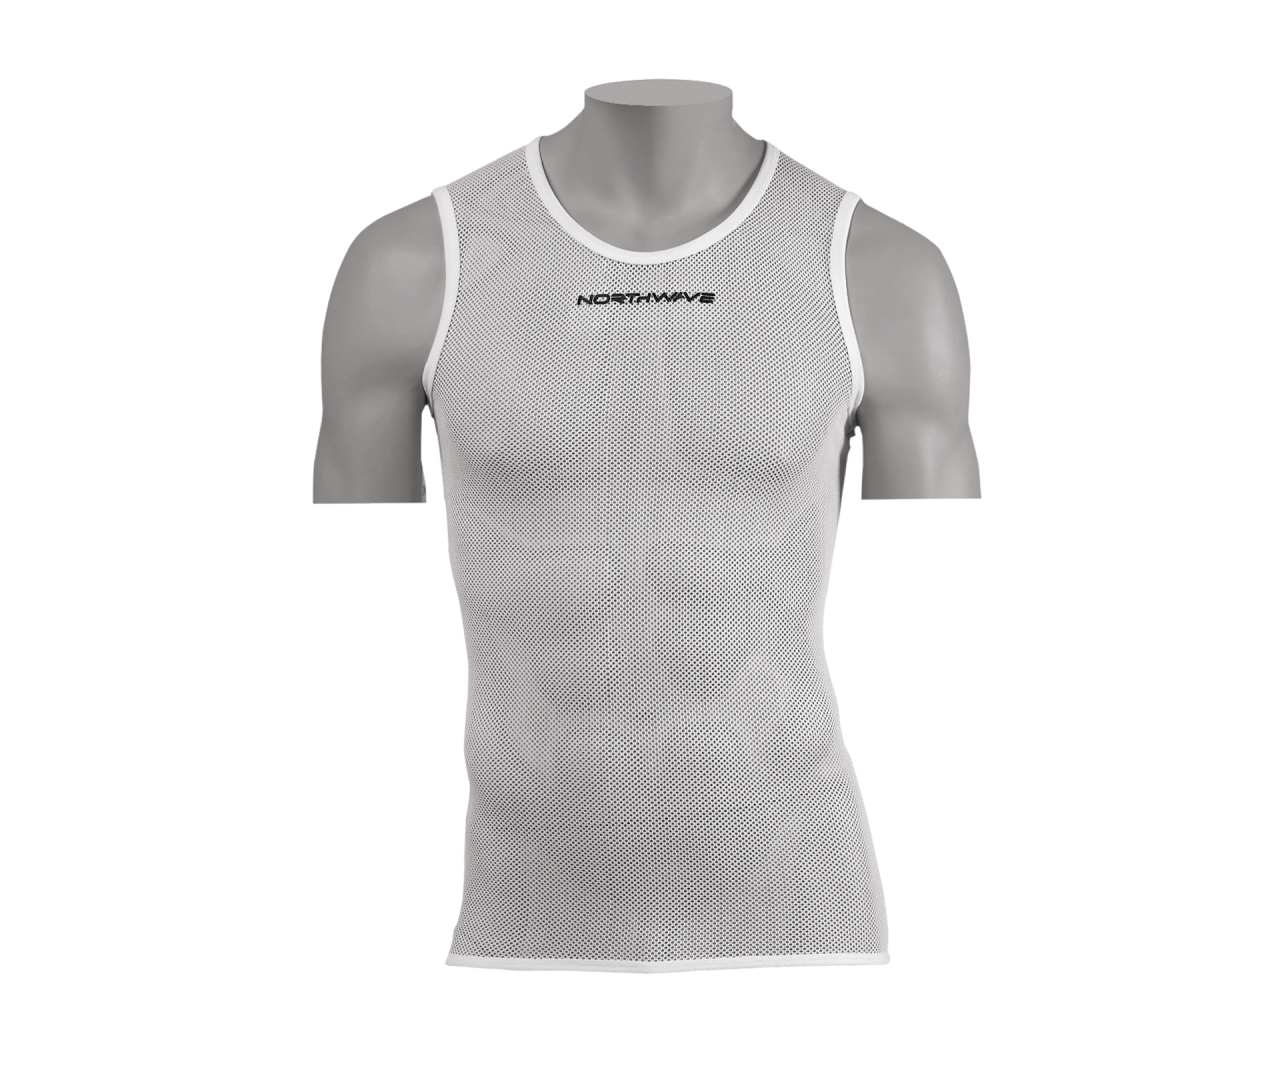 Maglia Intimo Ciclismo Northwave Light Sls WHITE